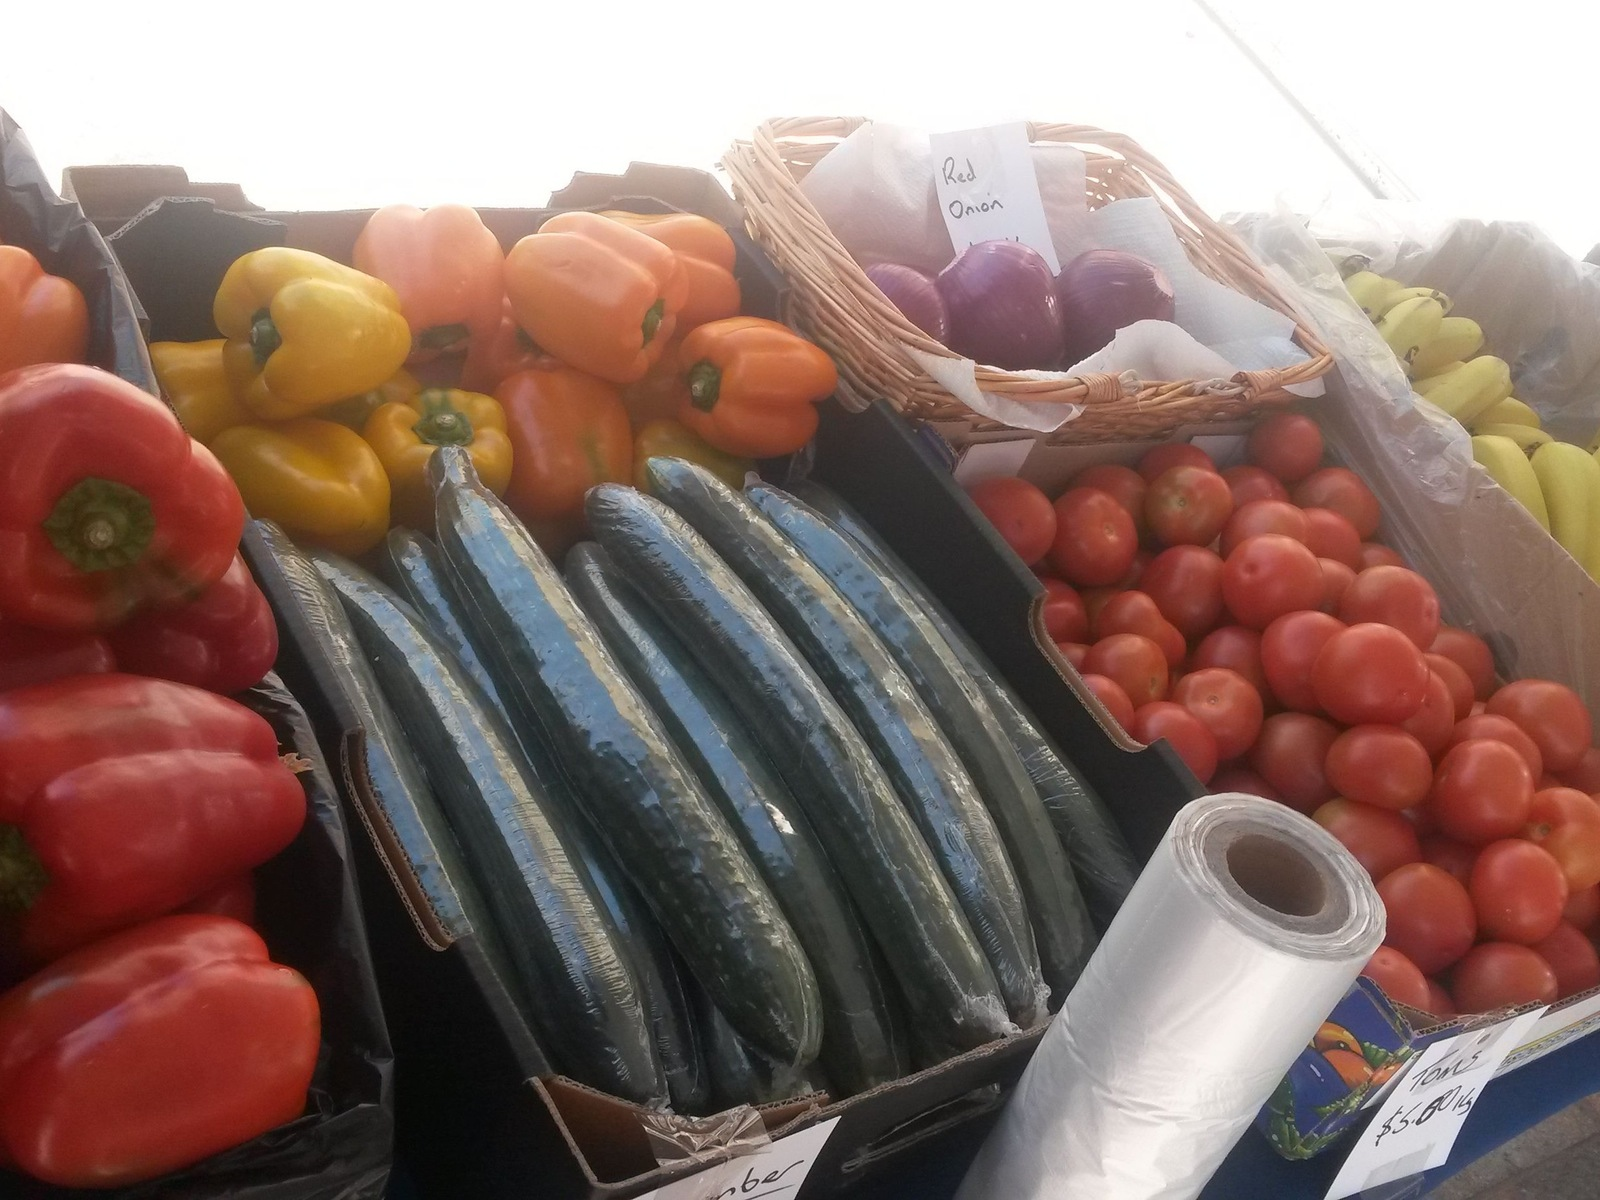 Yarram Courthouse Produce Market